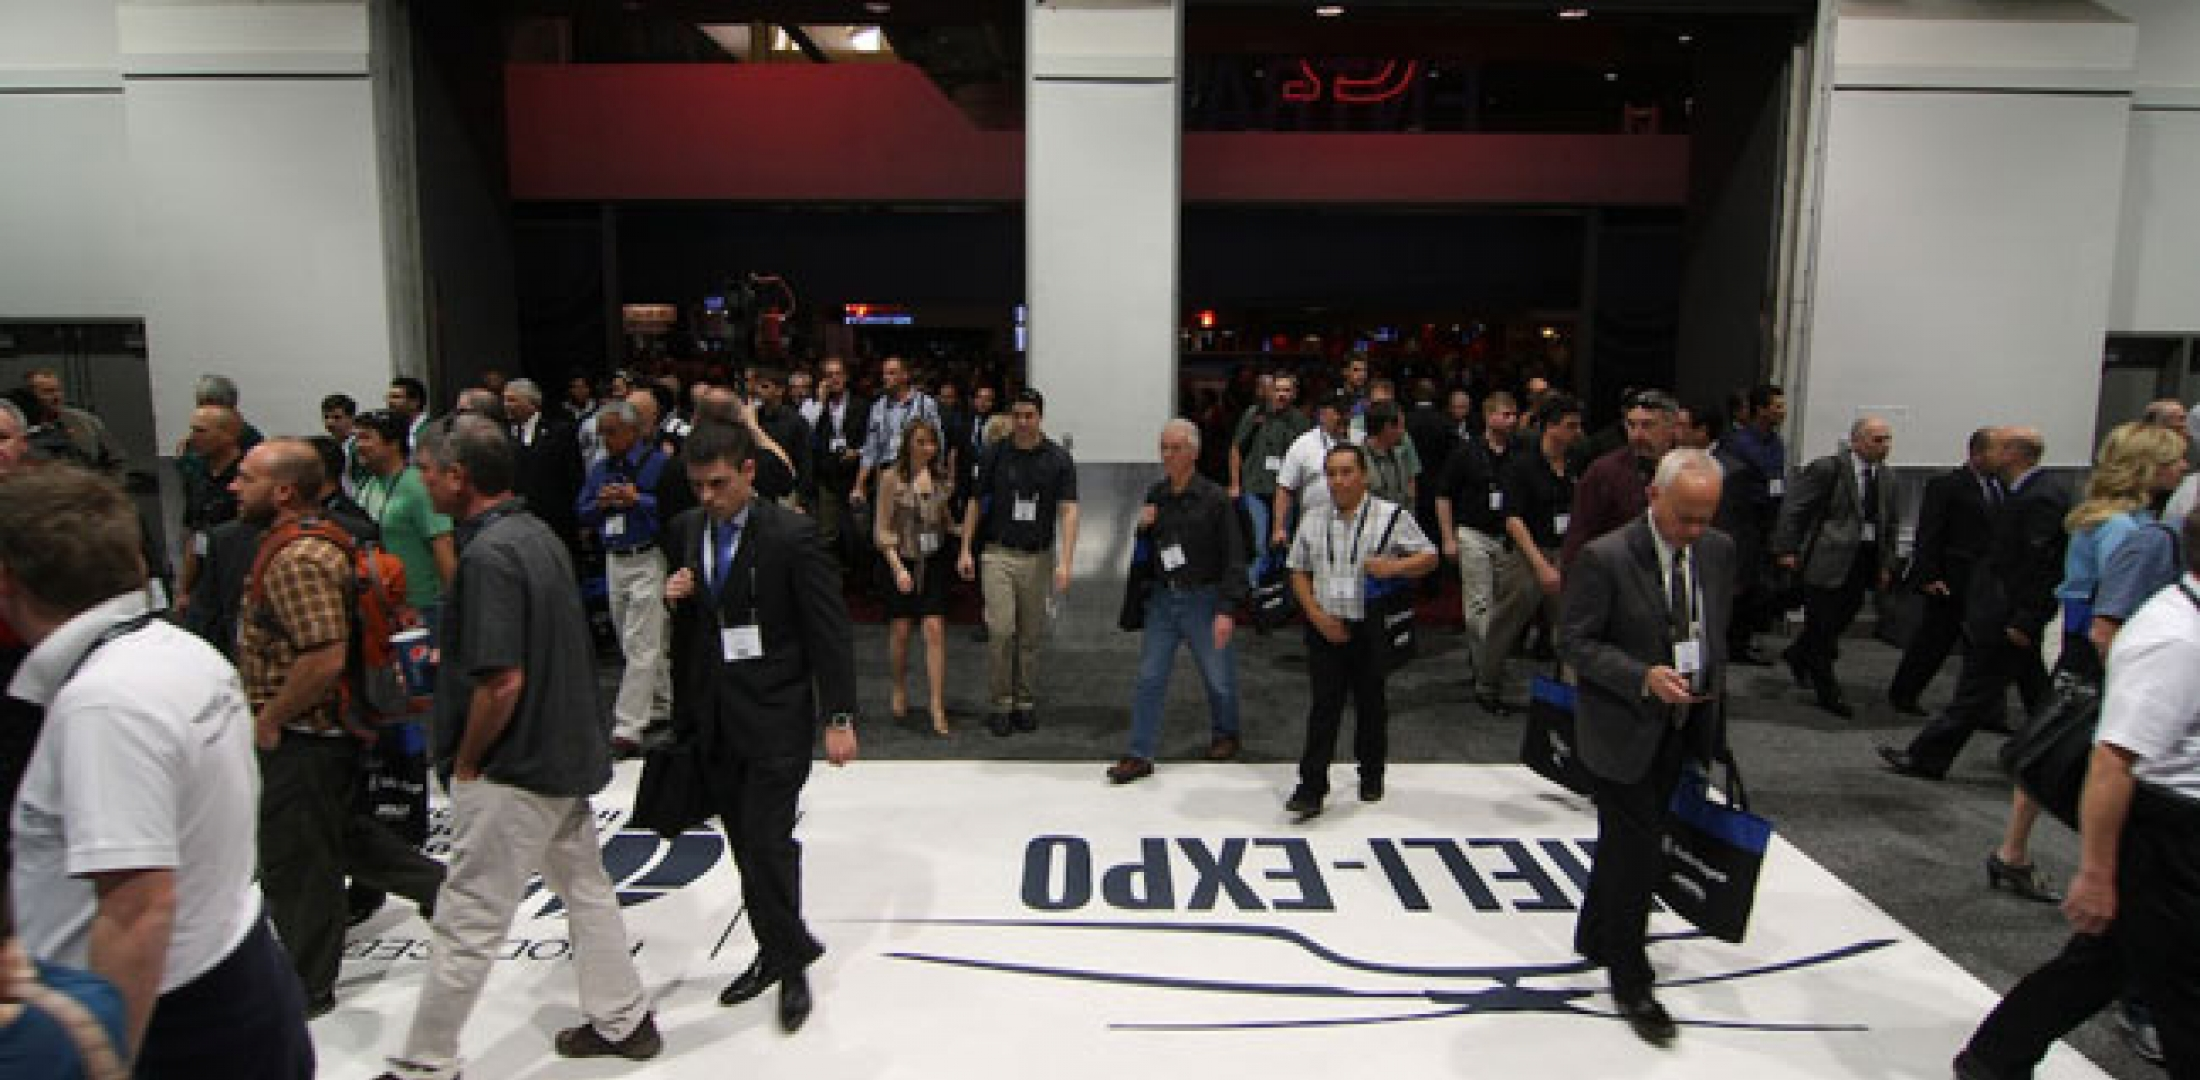 Attendees at Heli-Expo